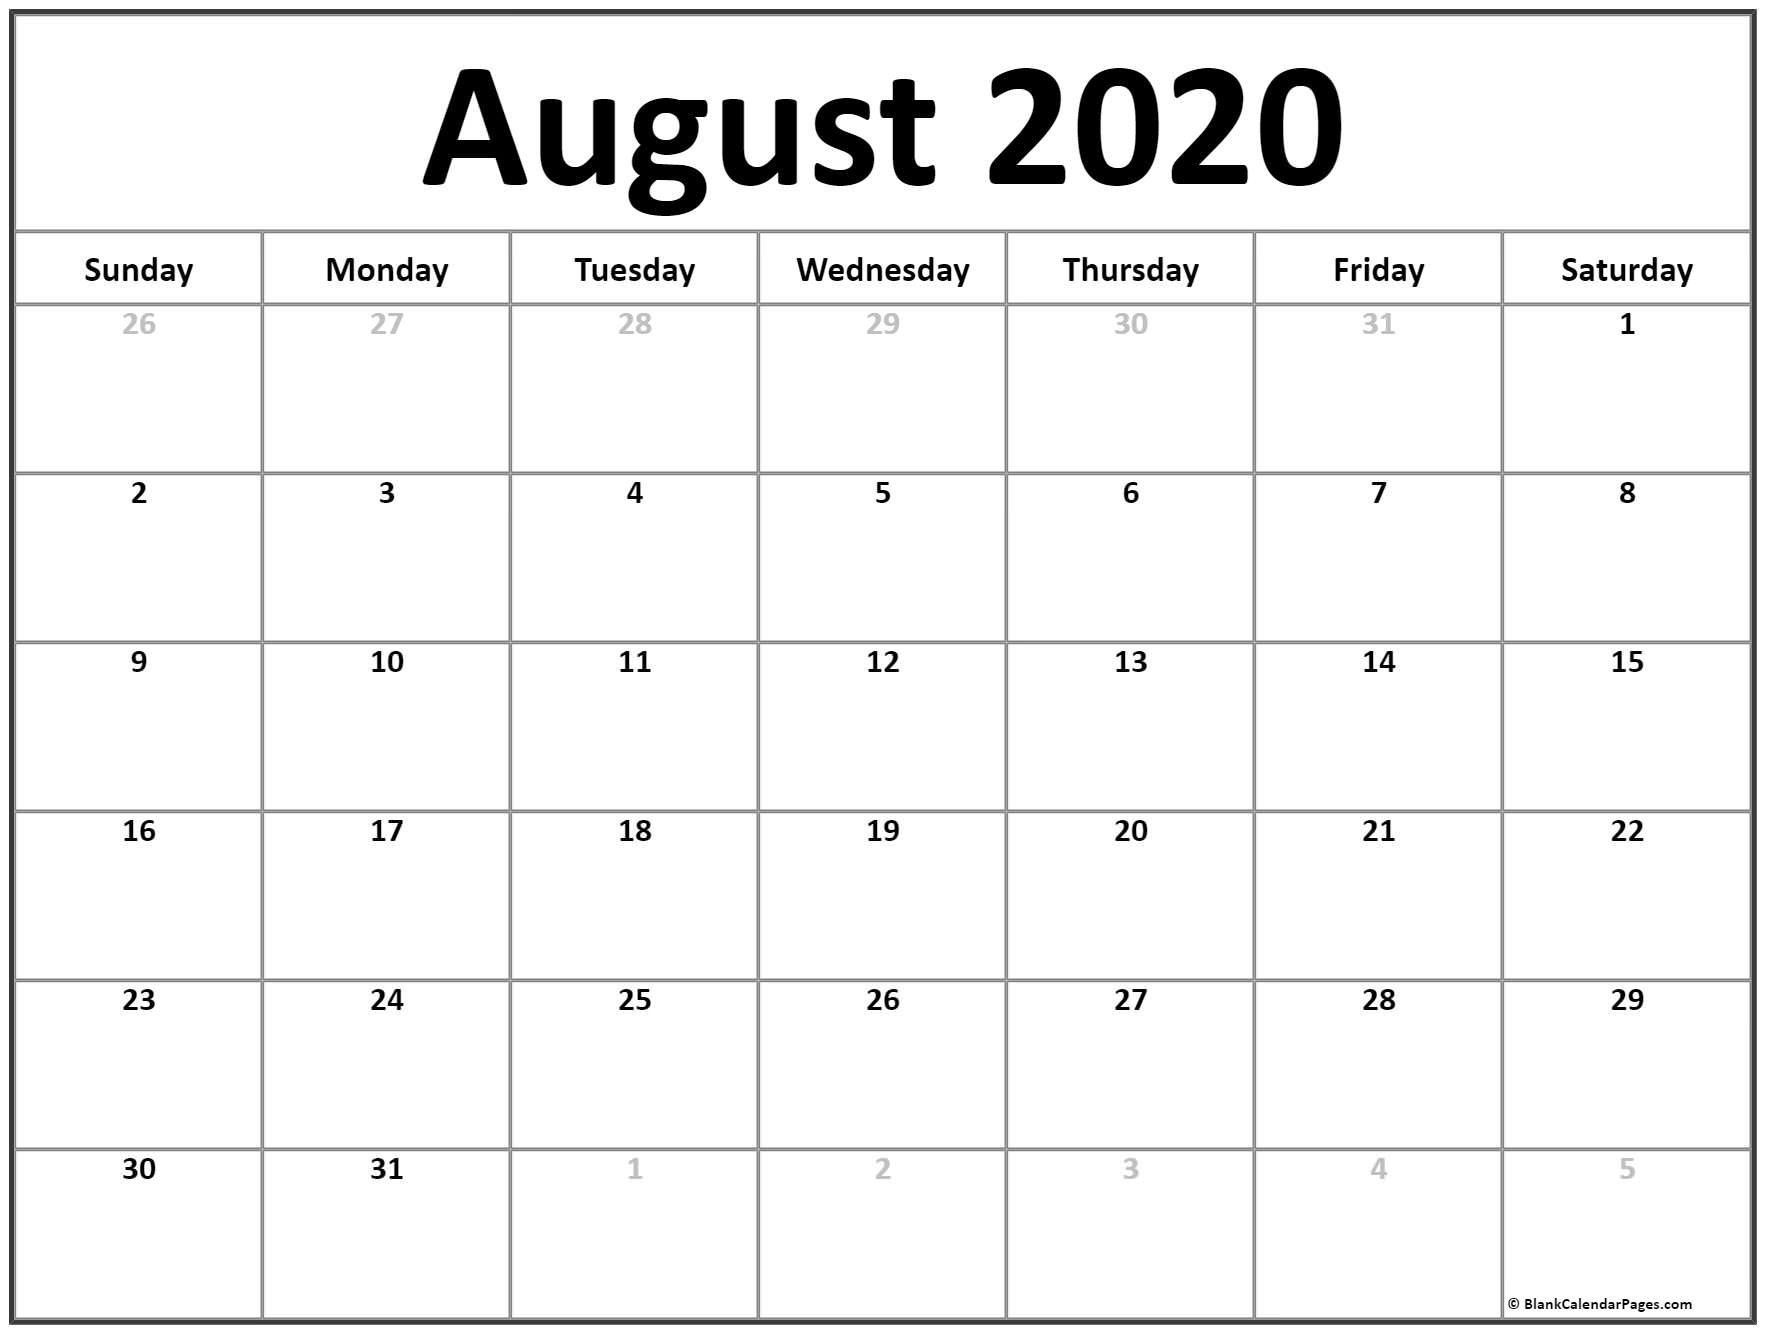 August 2020 Colorful Calendar Template | Example Calendar